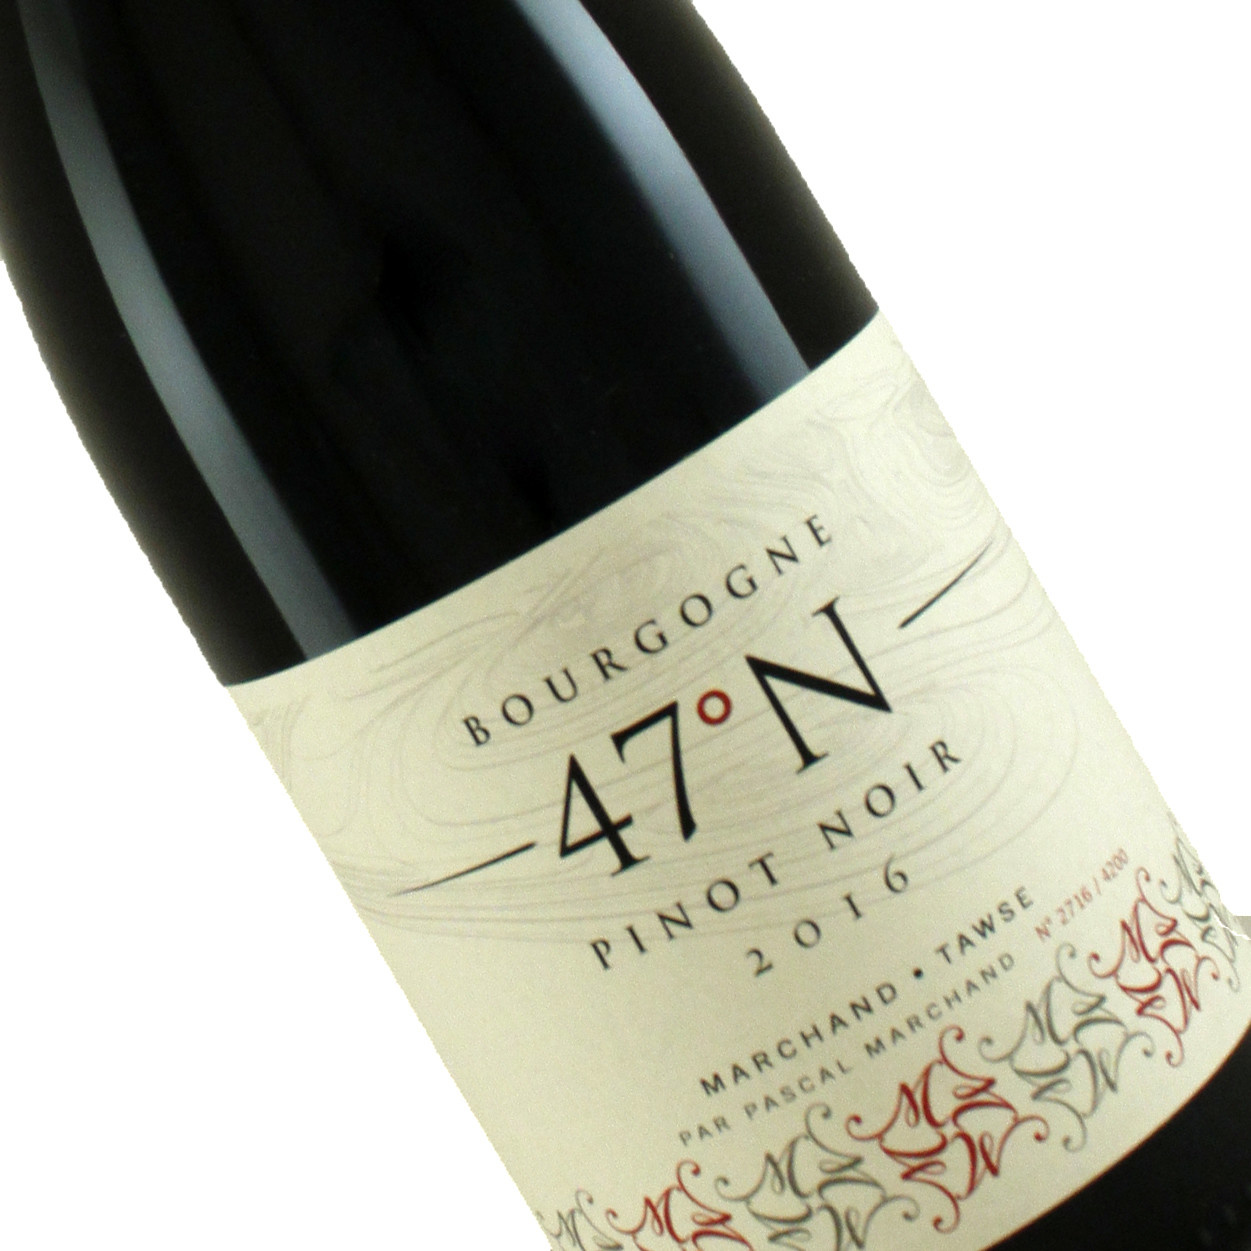 Marchand Tawse 2016 Pinot Noir 47 N Bourgogne